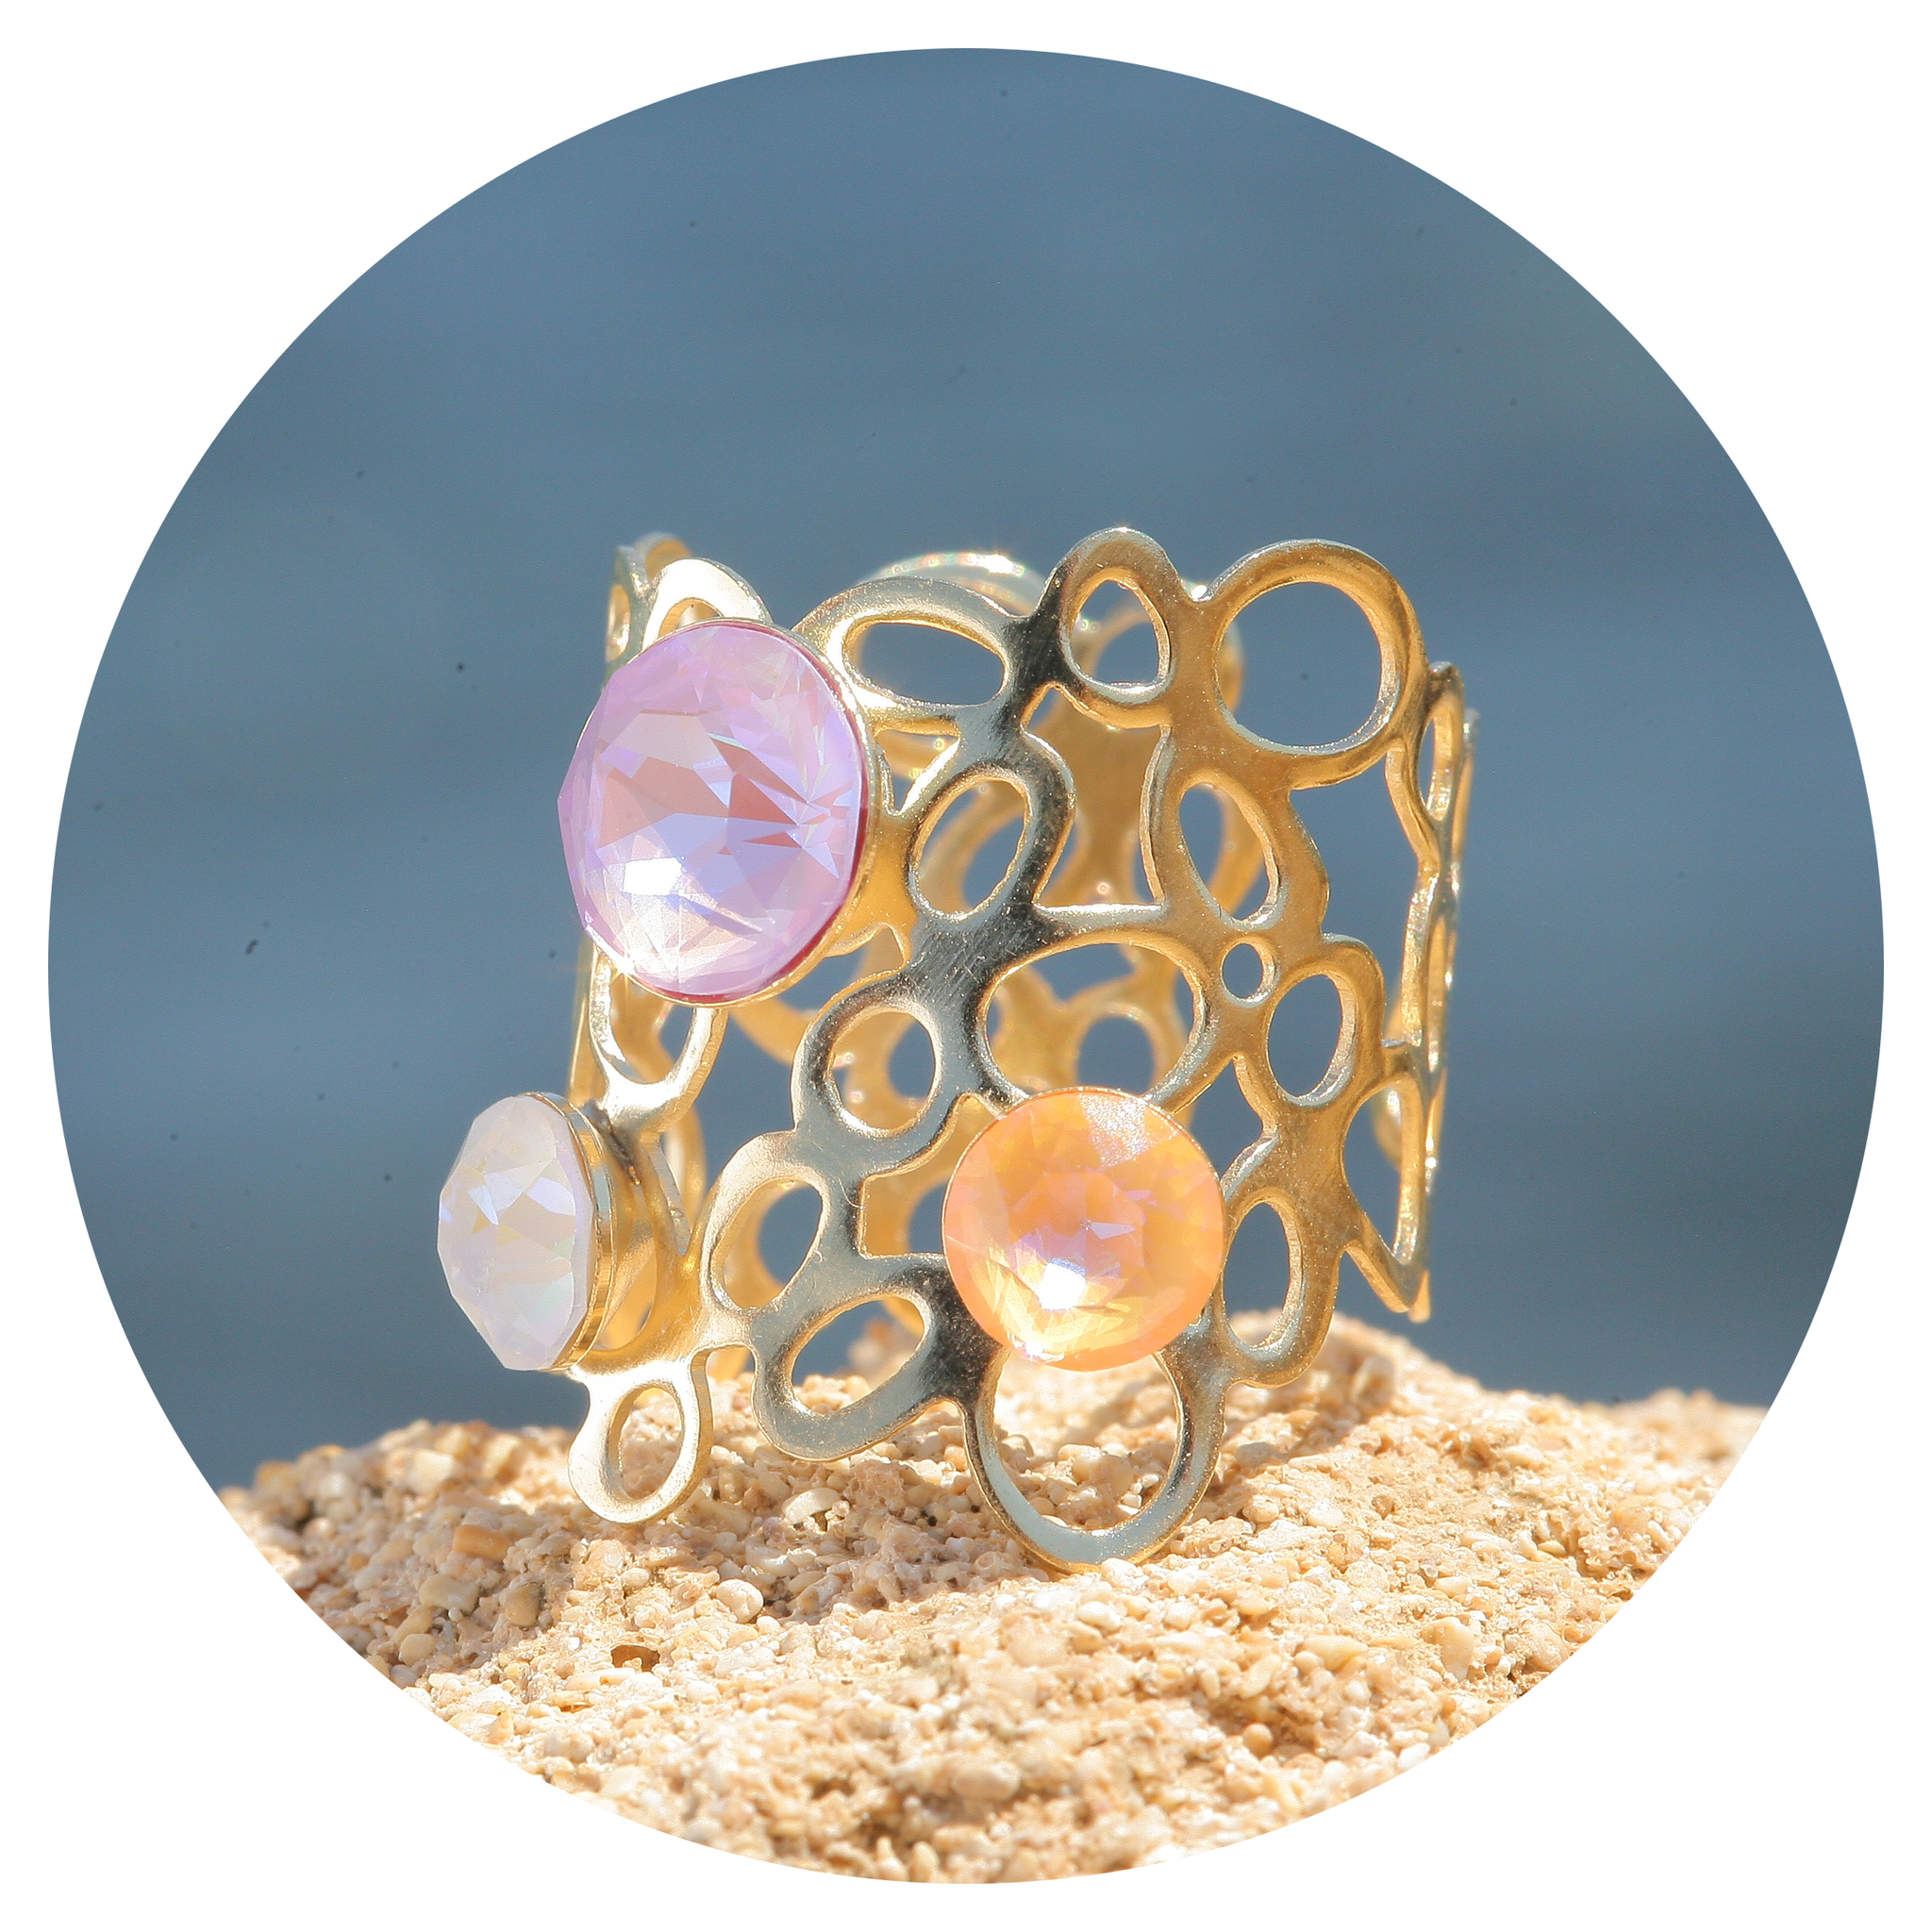 artjany goldener Ring in einem peach lavender deliTe mix